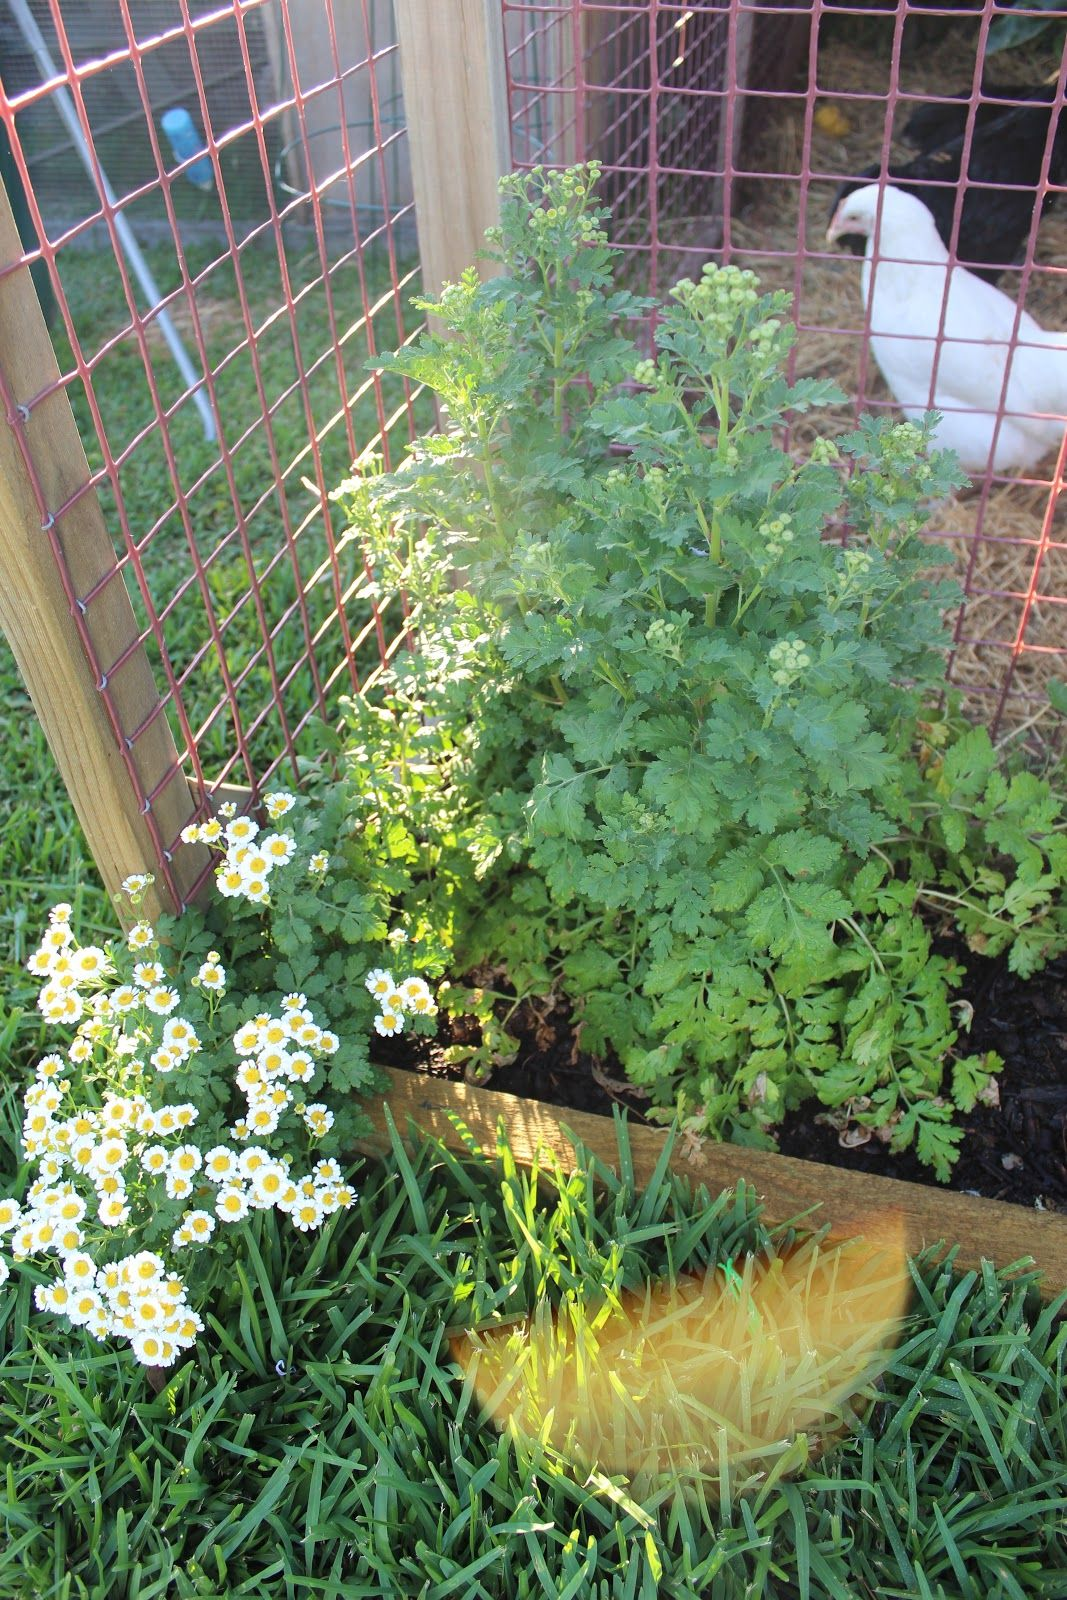 Pictures Of Garden Fence To Keep Chickens Out | Feverfew   Related To  Pyrethrum So A Good Insect Repellant